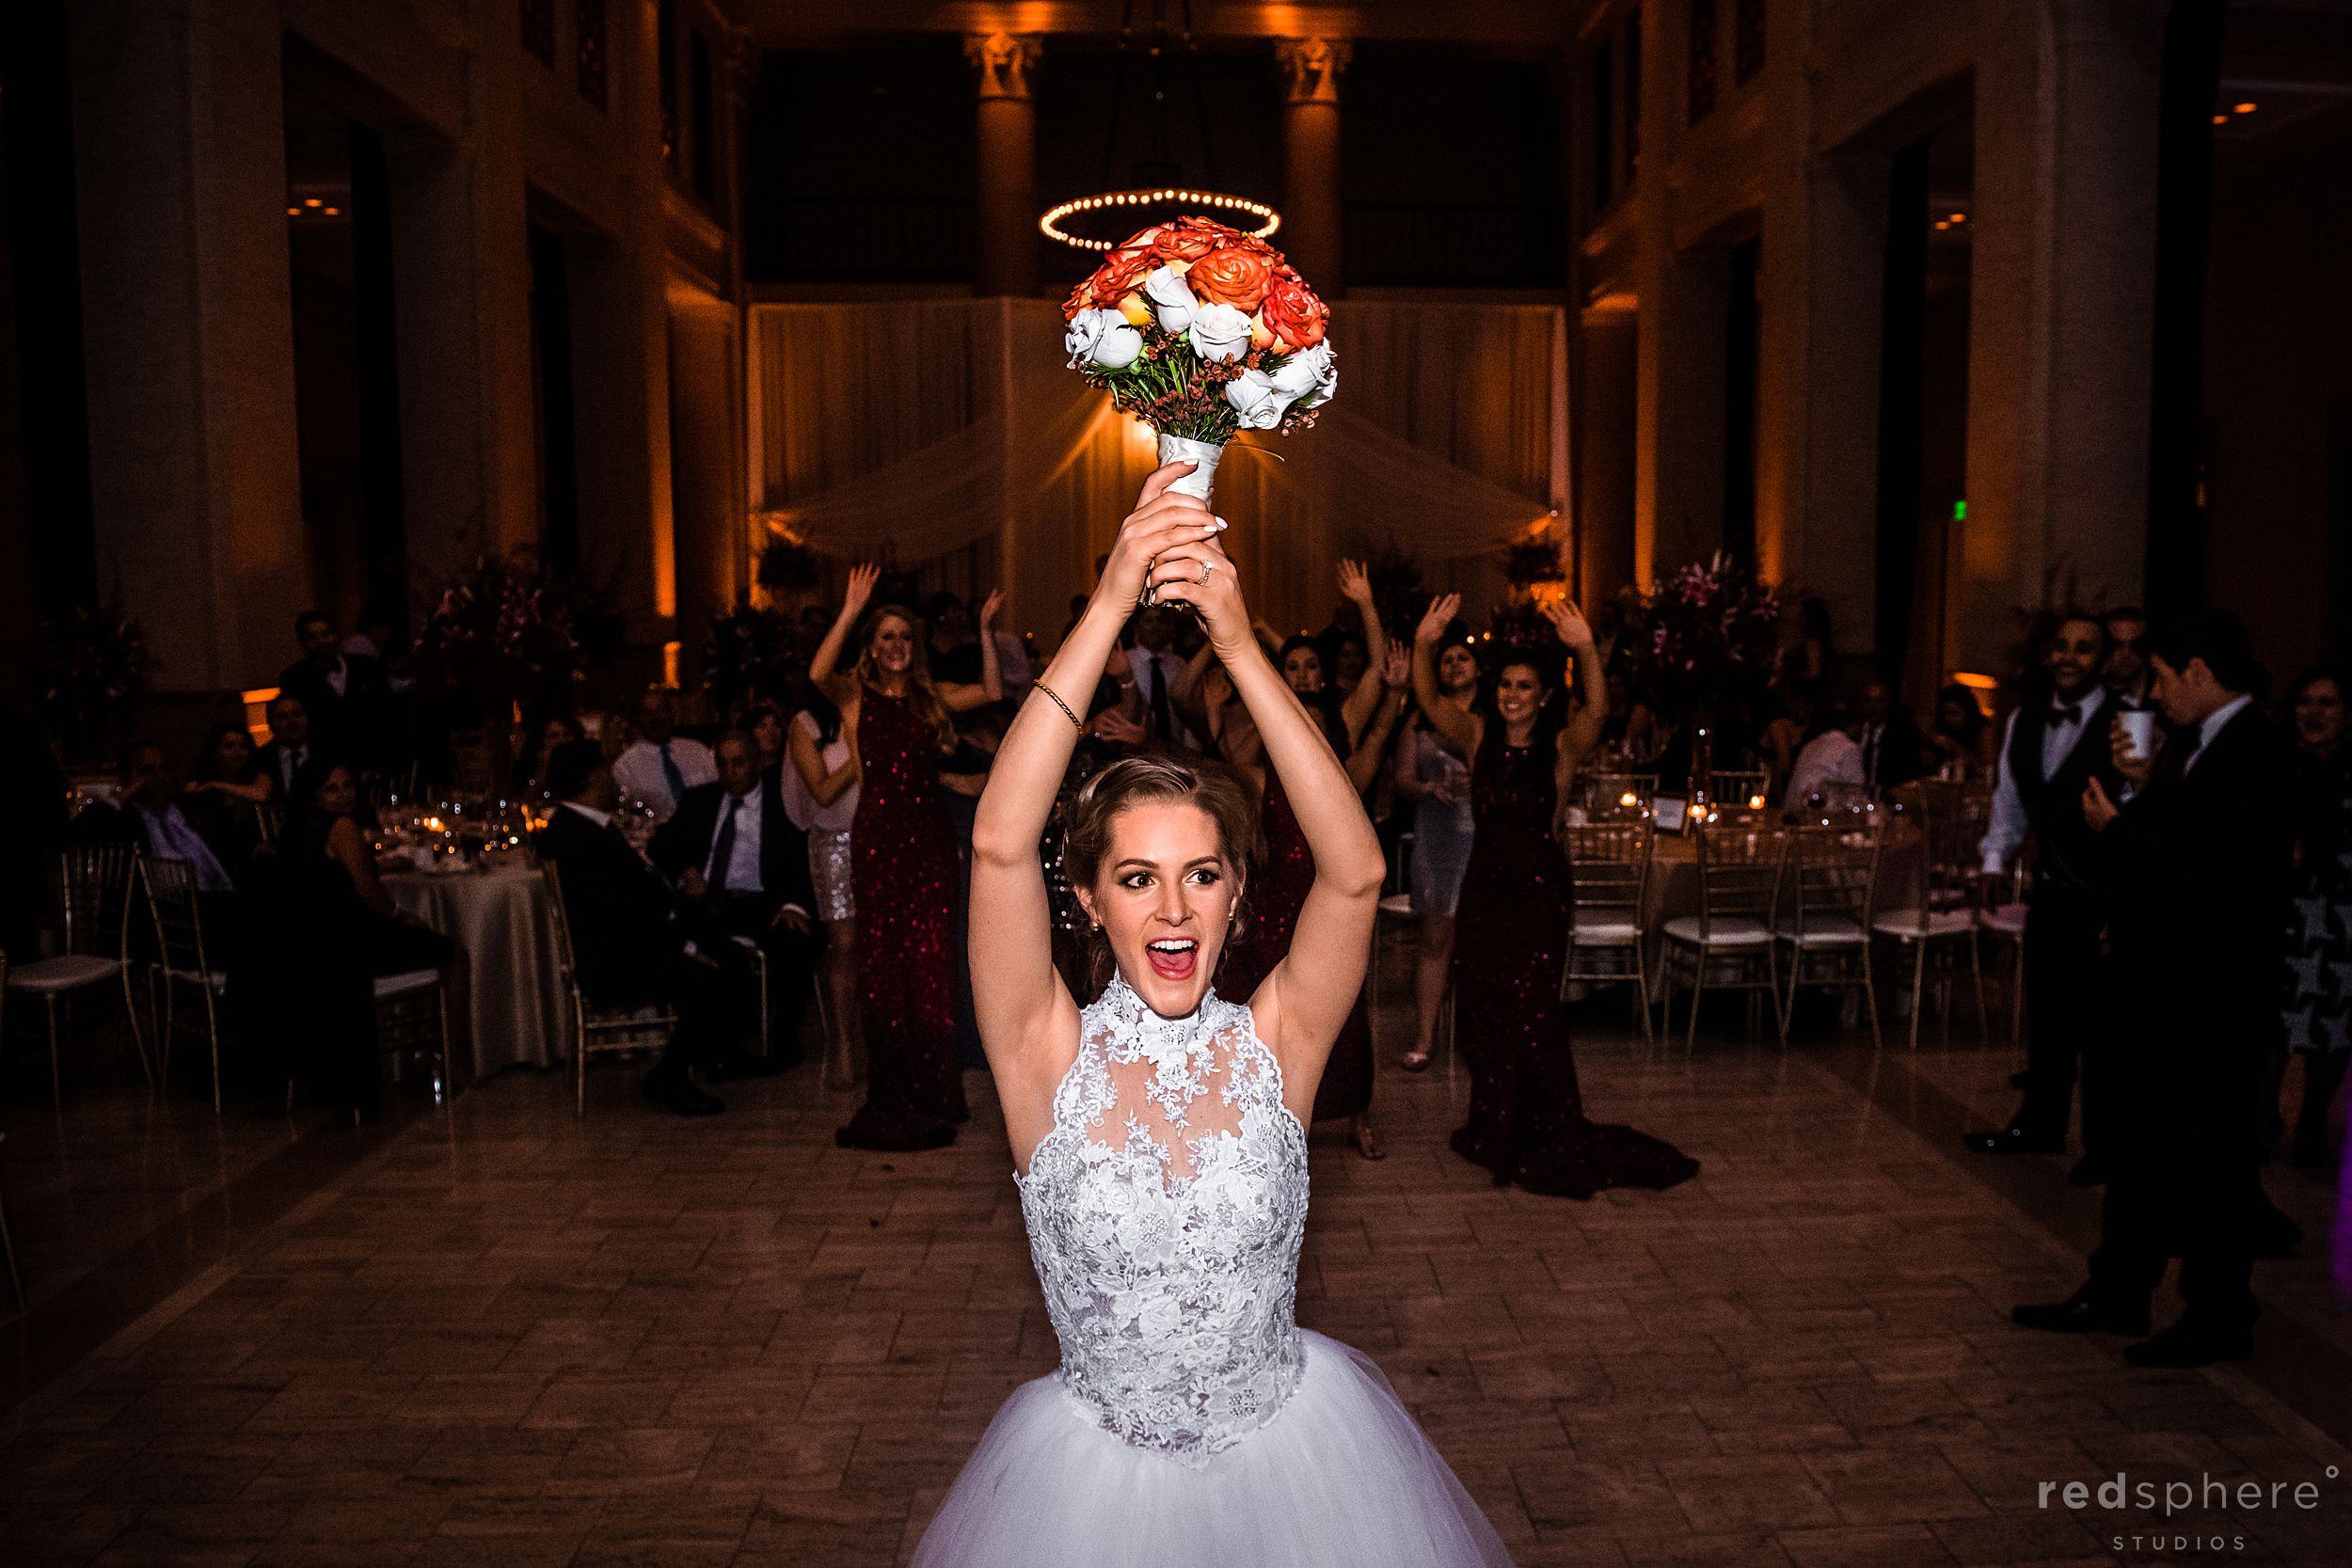 San Francisco Wedding at the Bently Reserve. Bouquet toss